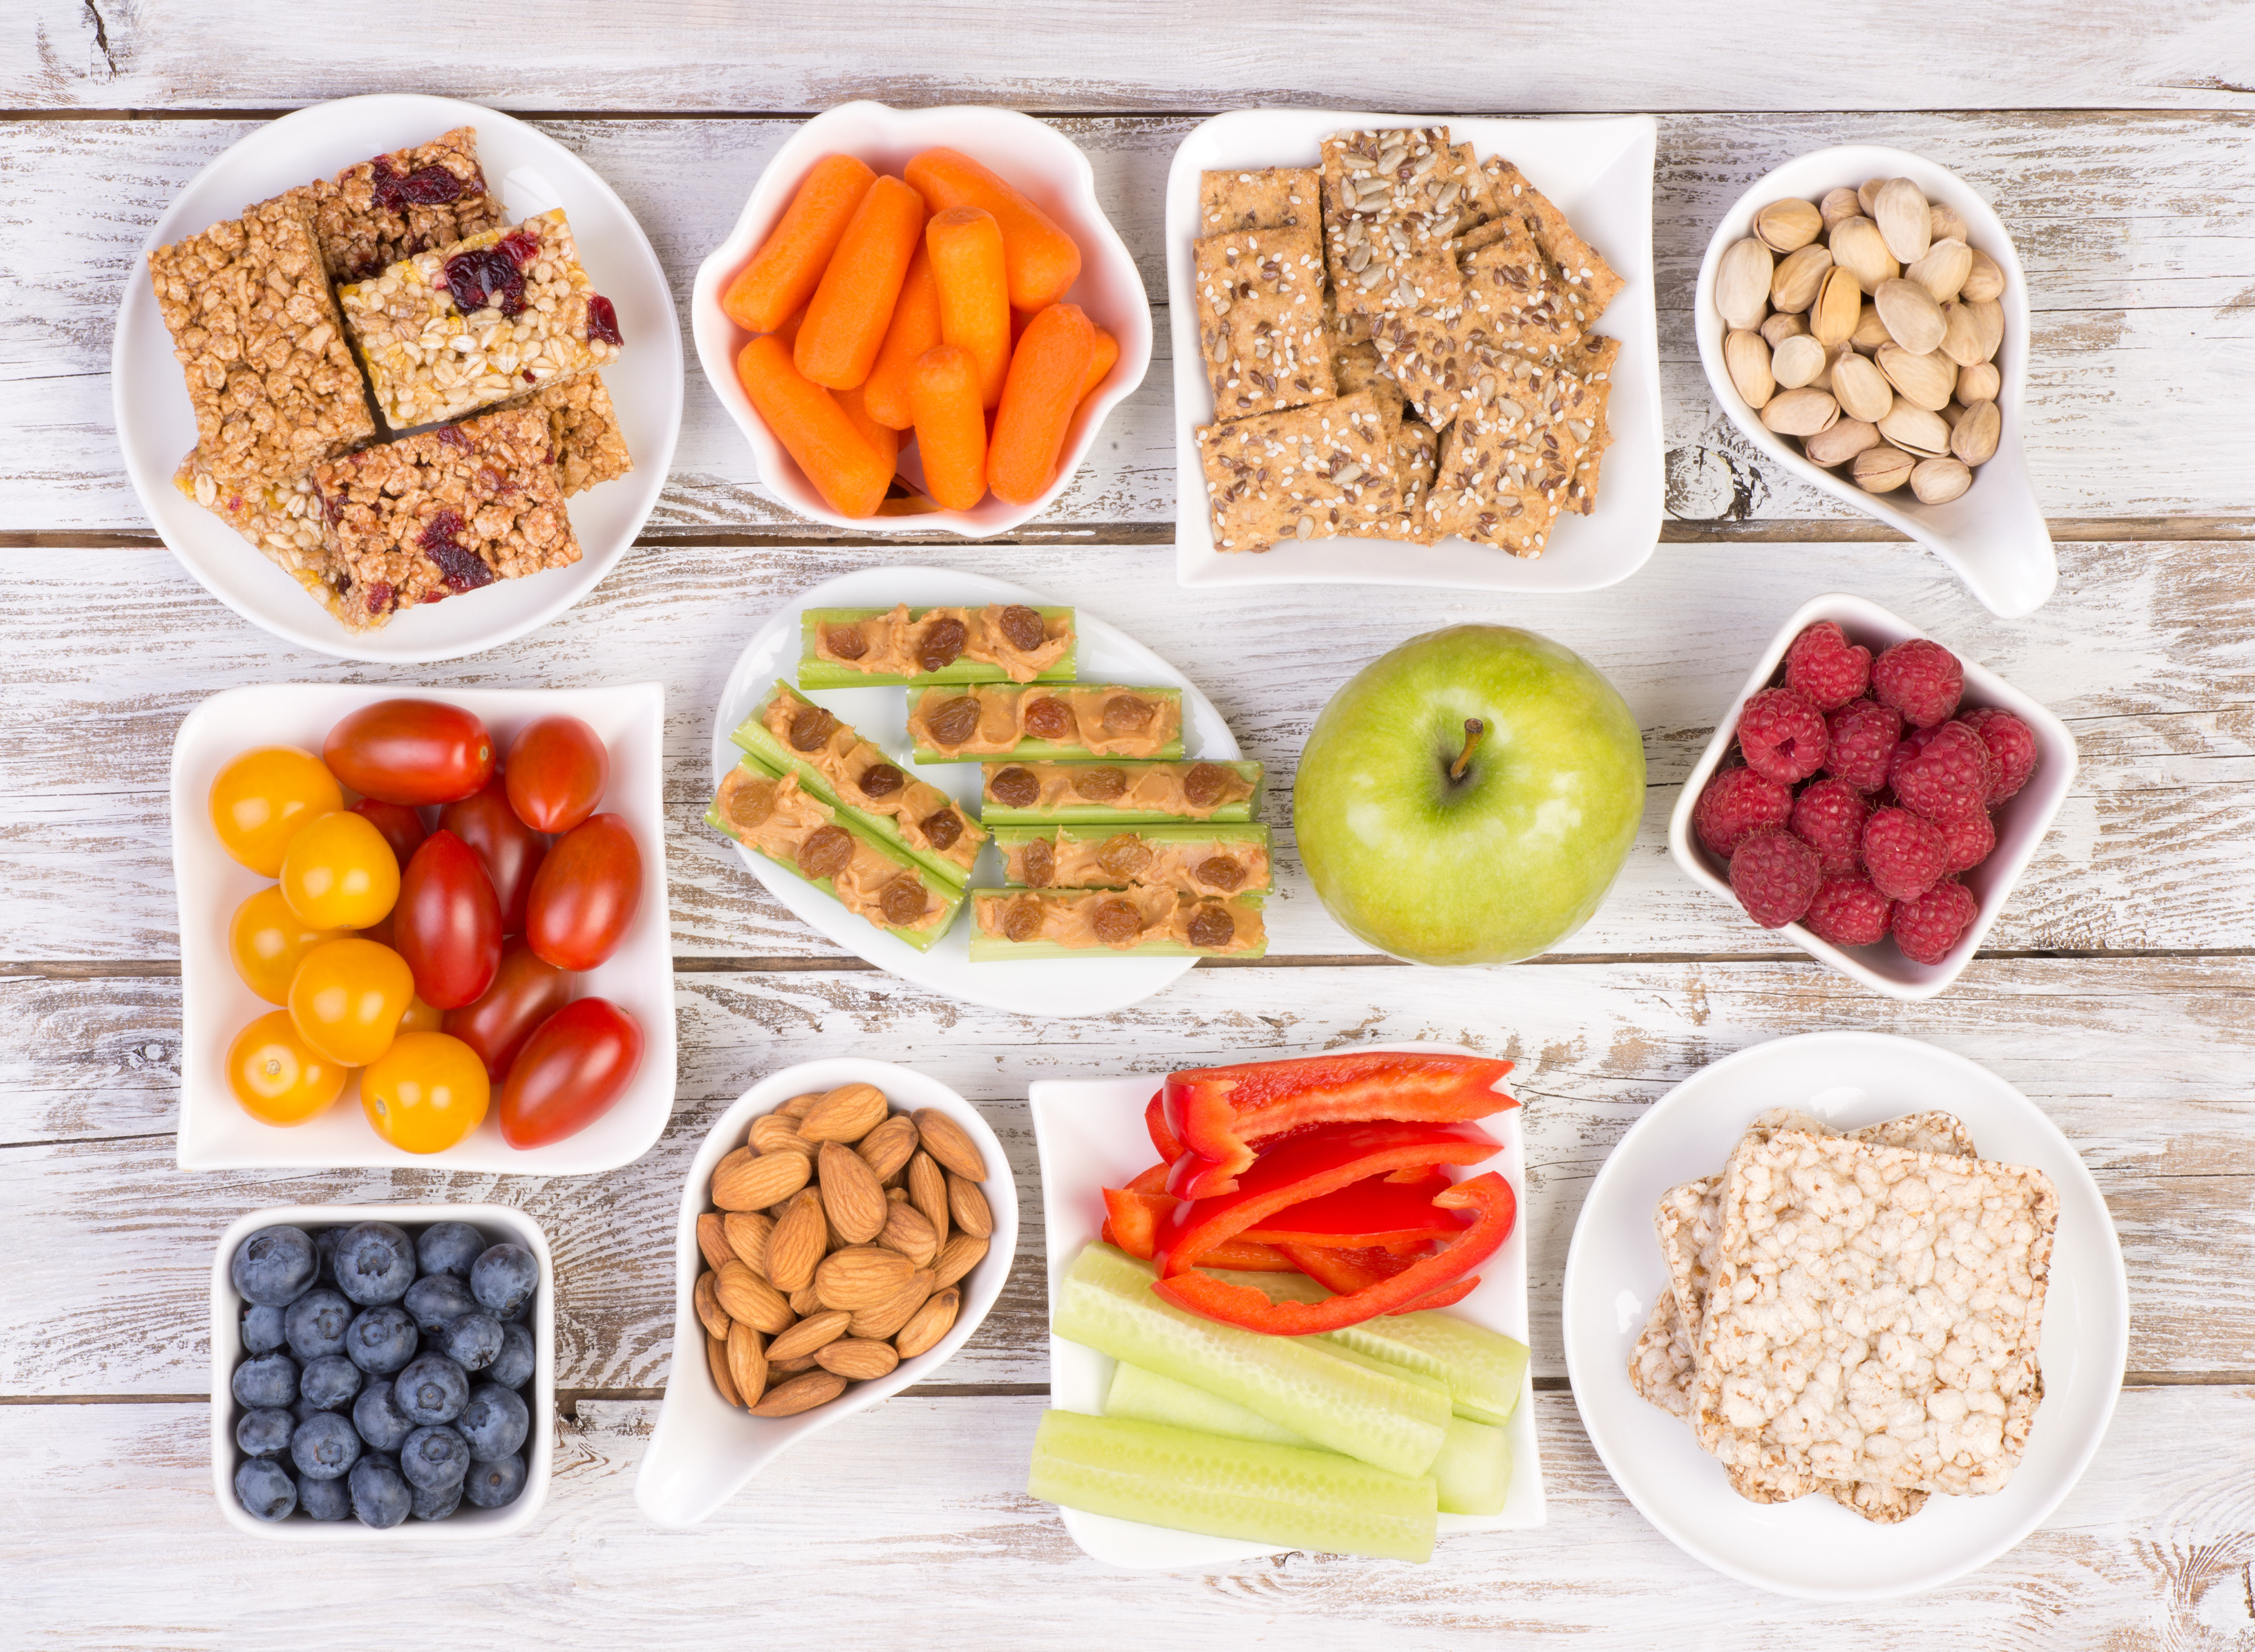 Healthy Filling Snacks For Work  Five Filling Snacks to Help You Eat Healthy – karen sutton MD